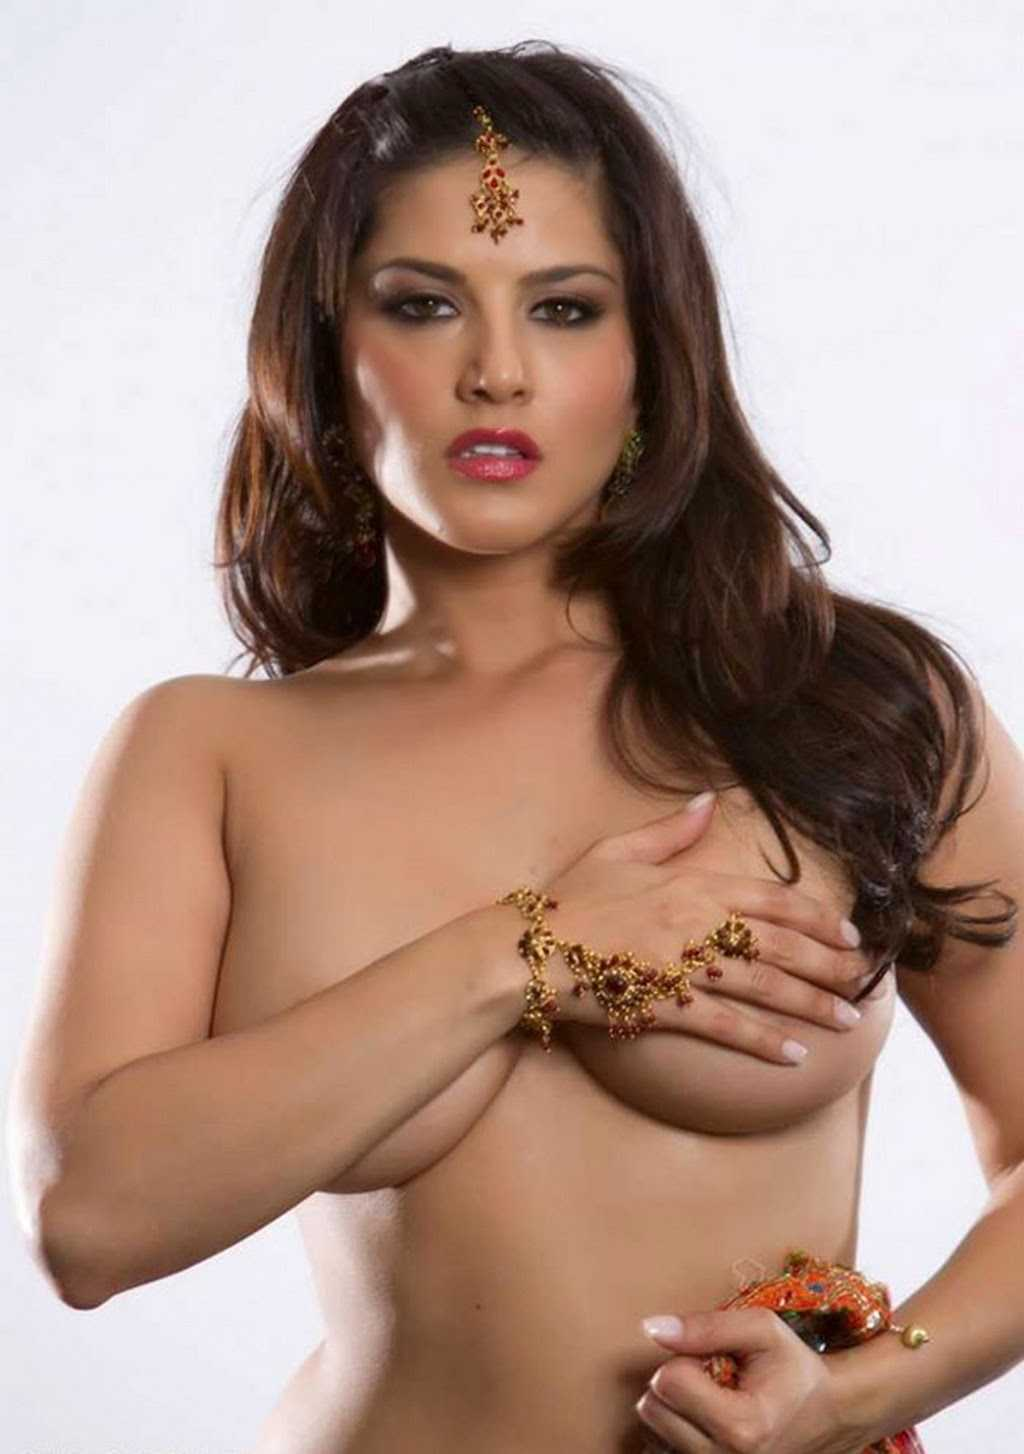 sunny leone hot topless pic